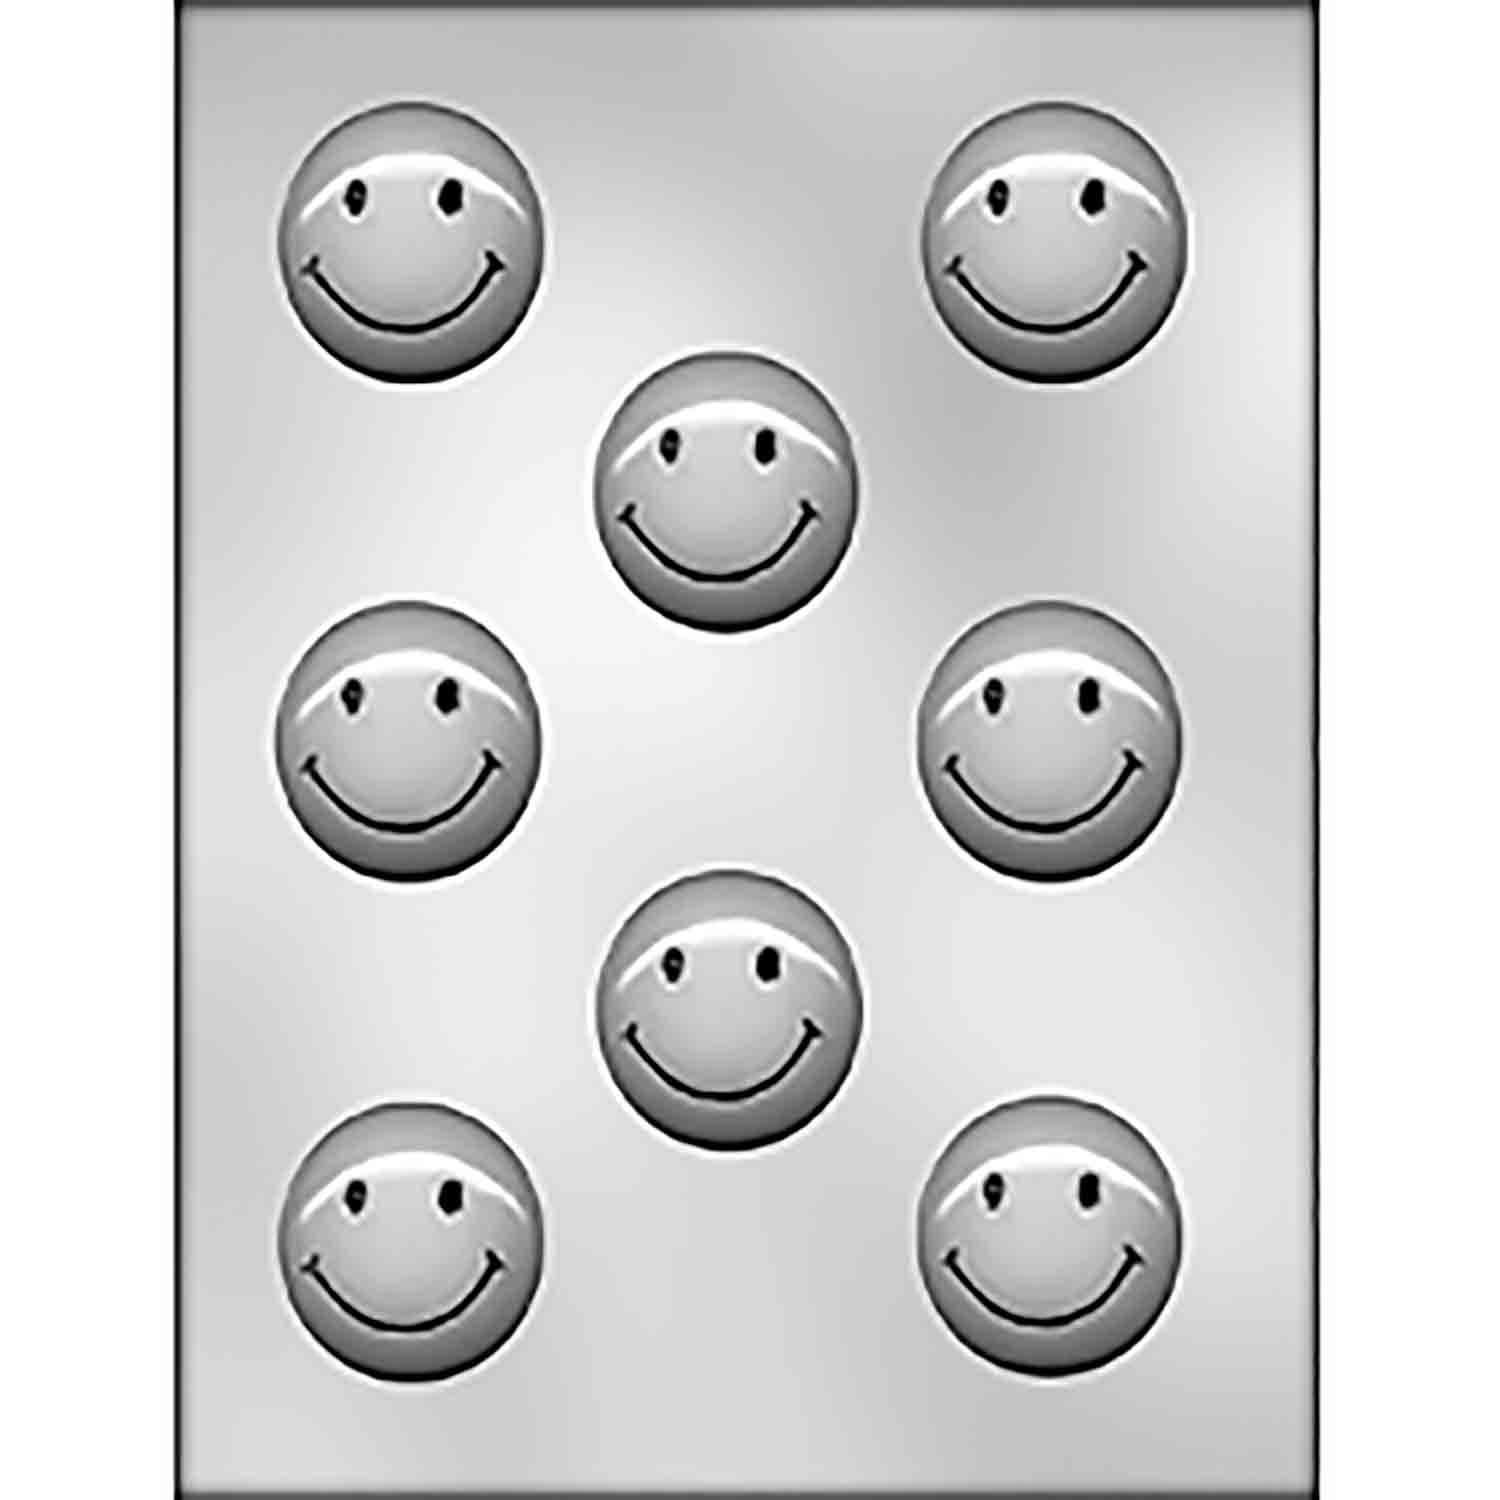 Smiley Face (Circle) Chocolate Candy Mold